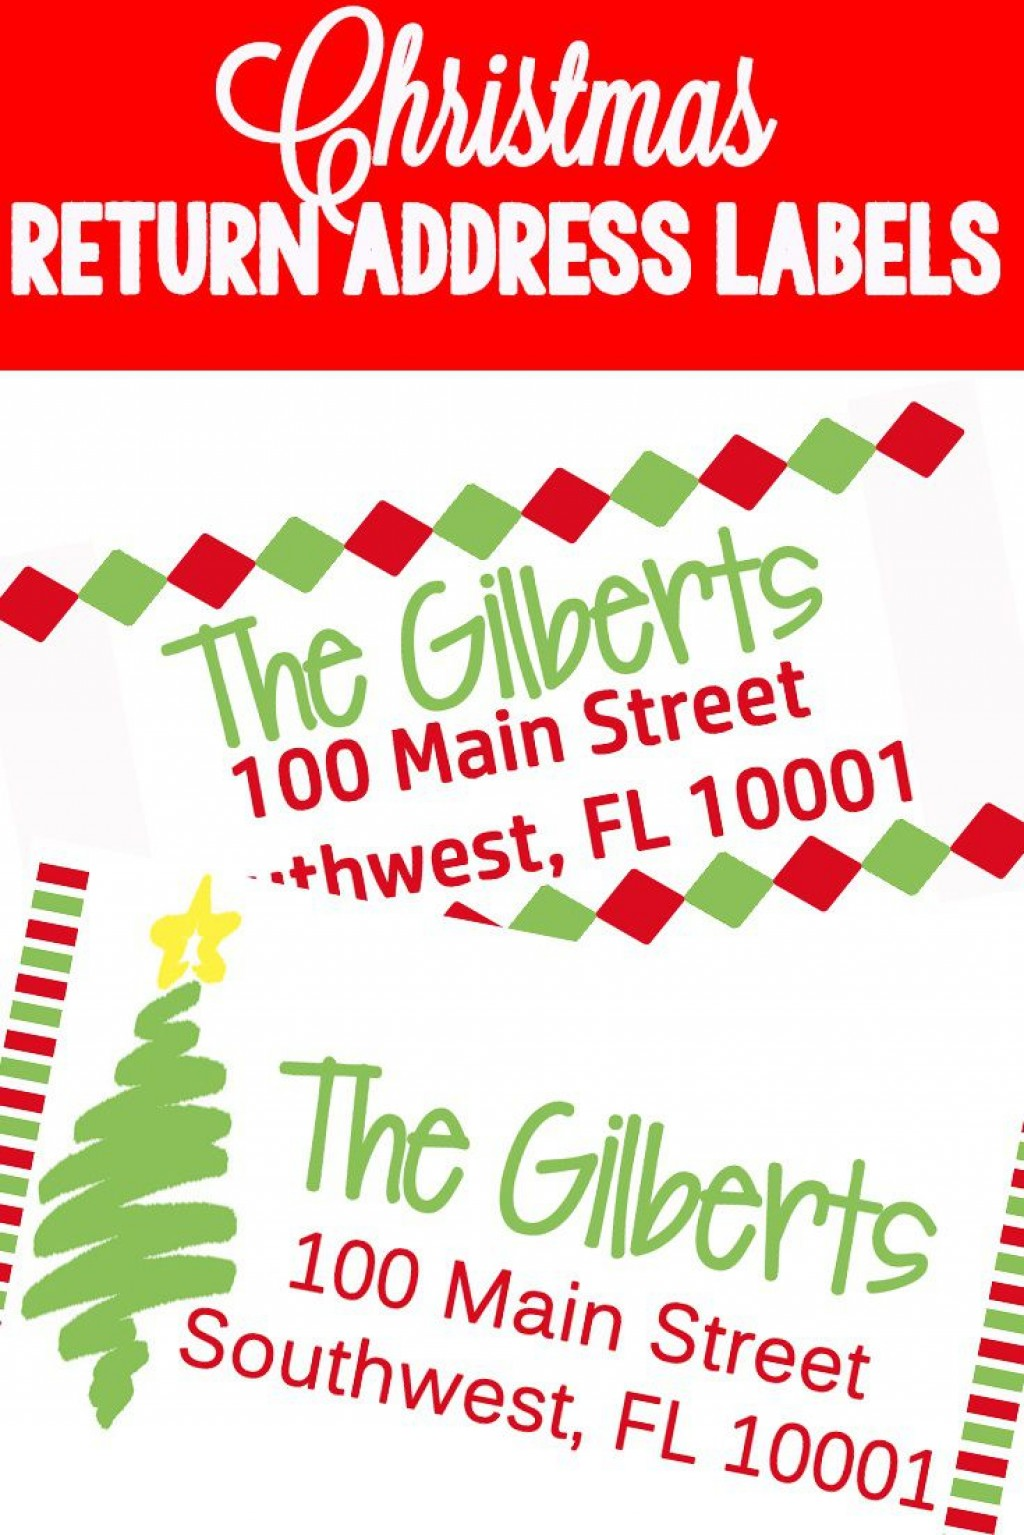 008 Breathtaking Christma Addres Label Template High Resolution  Free Download Shipping CardLarge